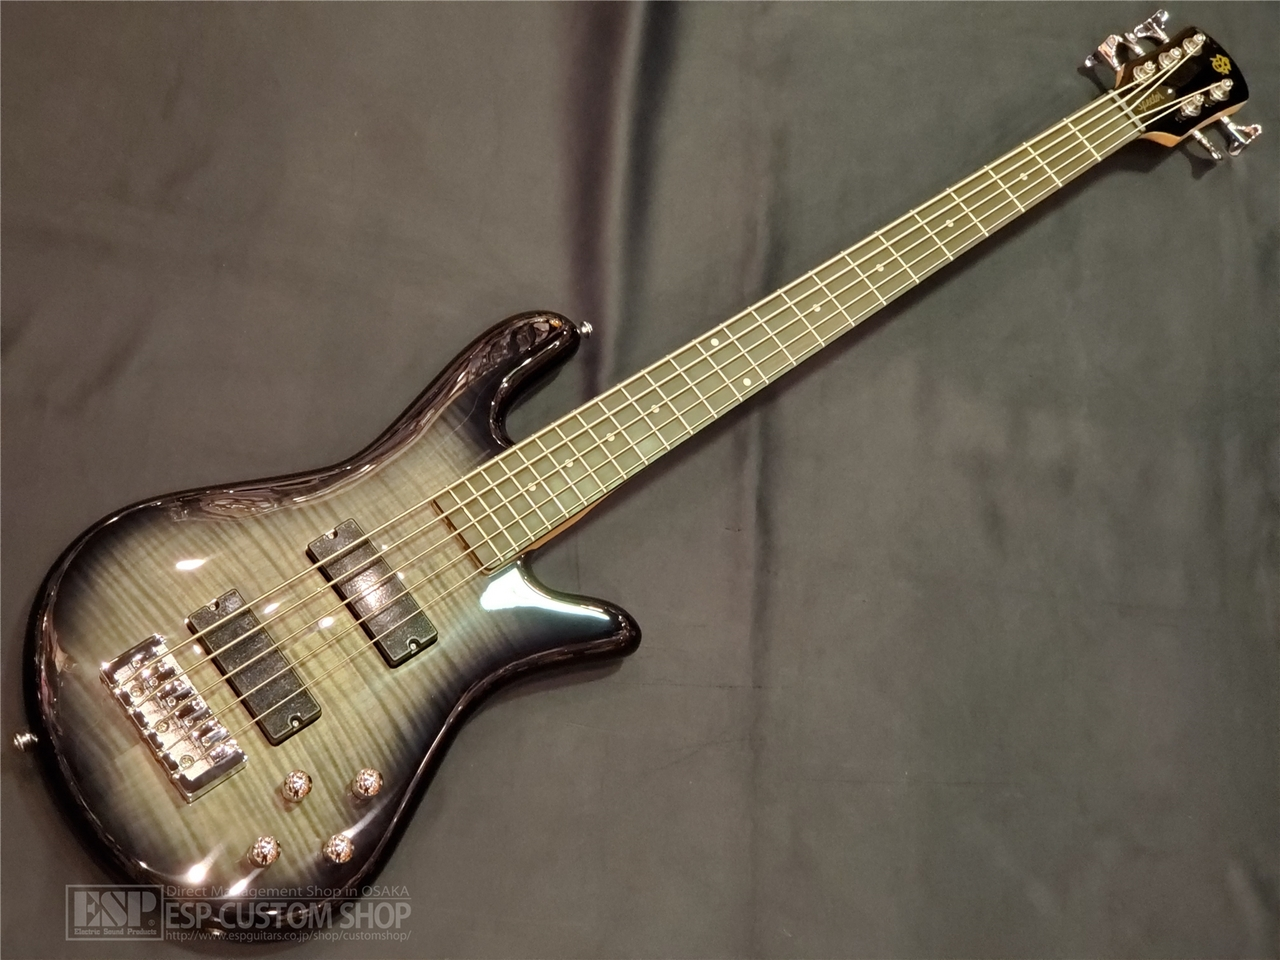 【即納可能】Spector(スペクター) Legend5 Standard / Black Stain Gloss 大阪店